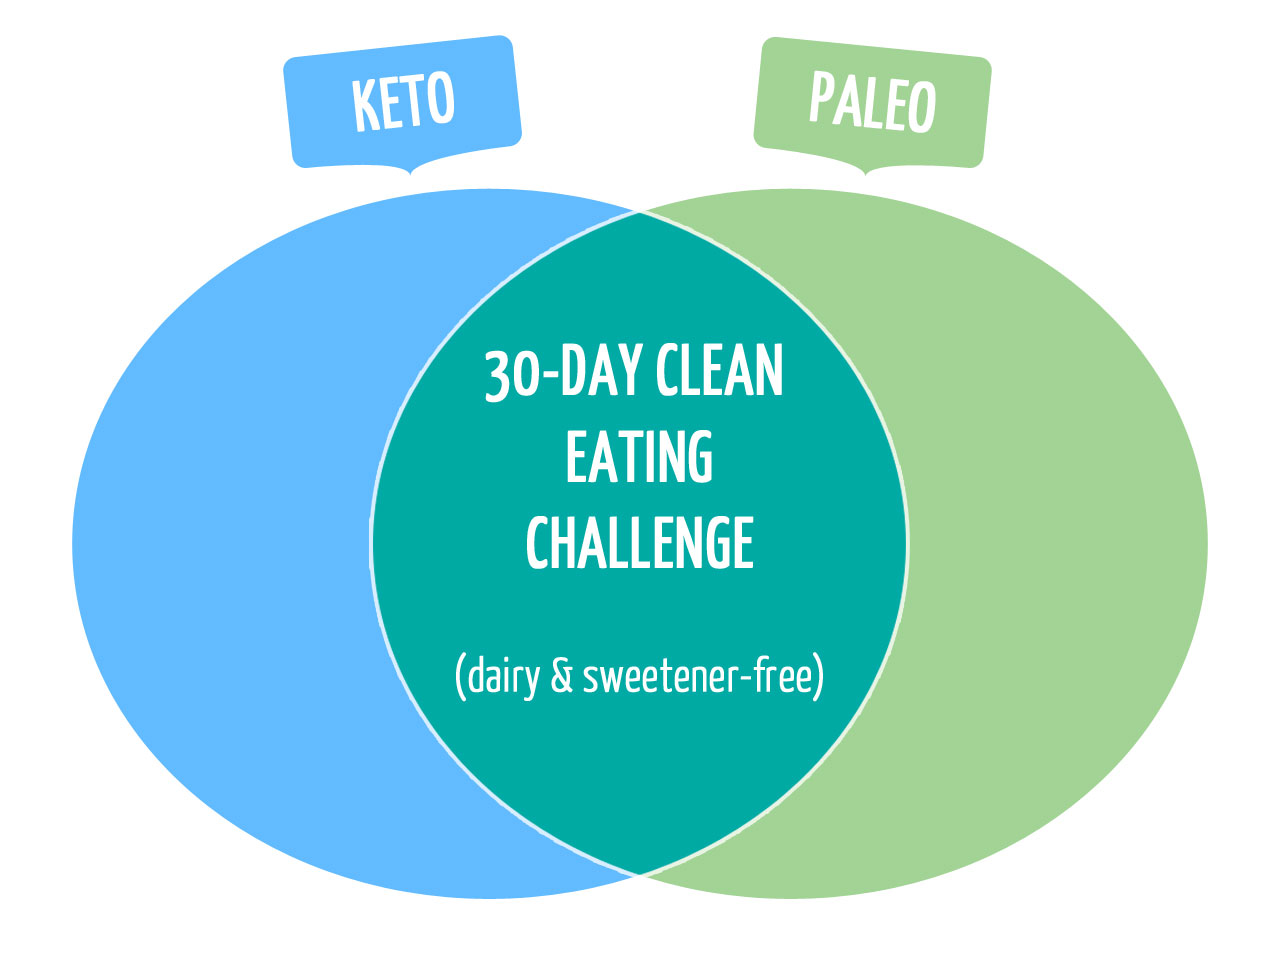 |30-Day Clean Eating Challenge